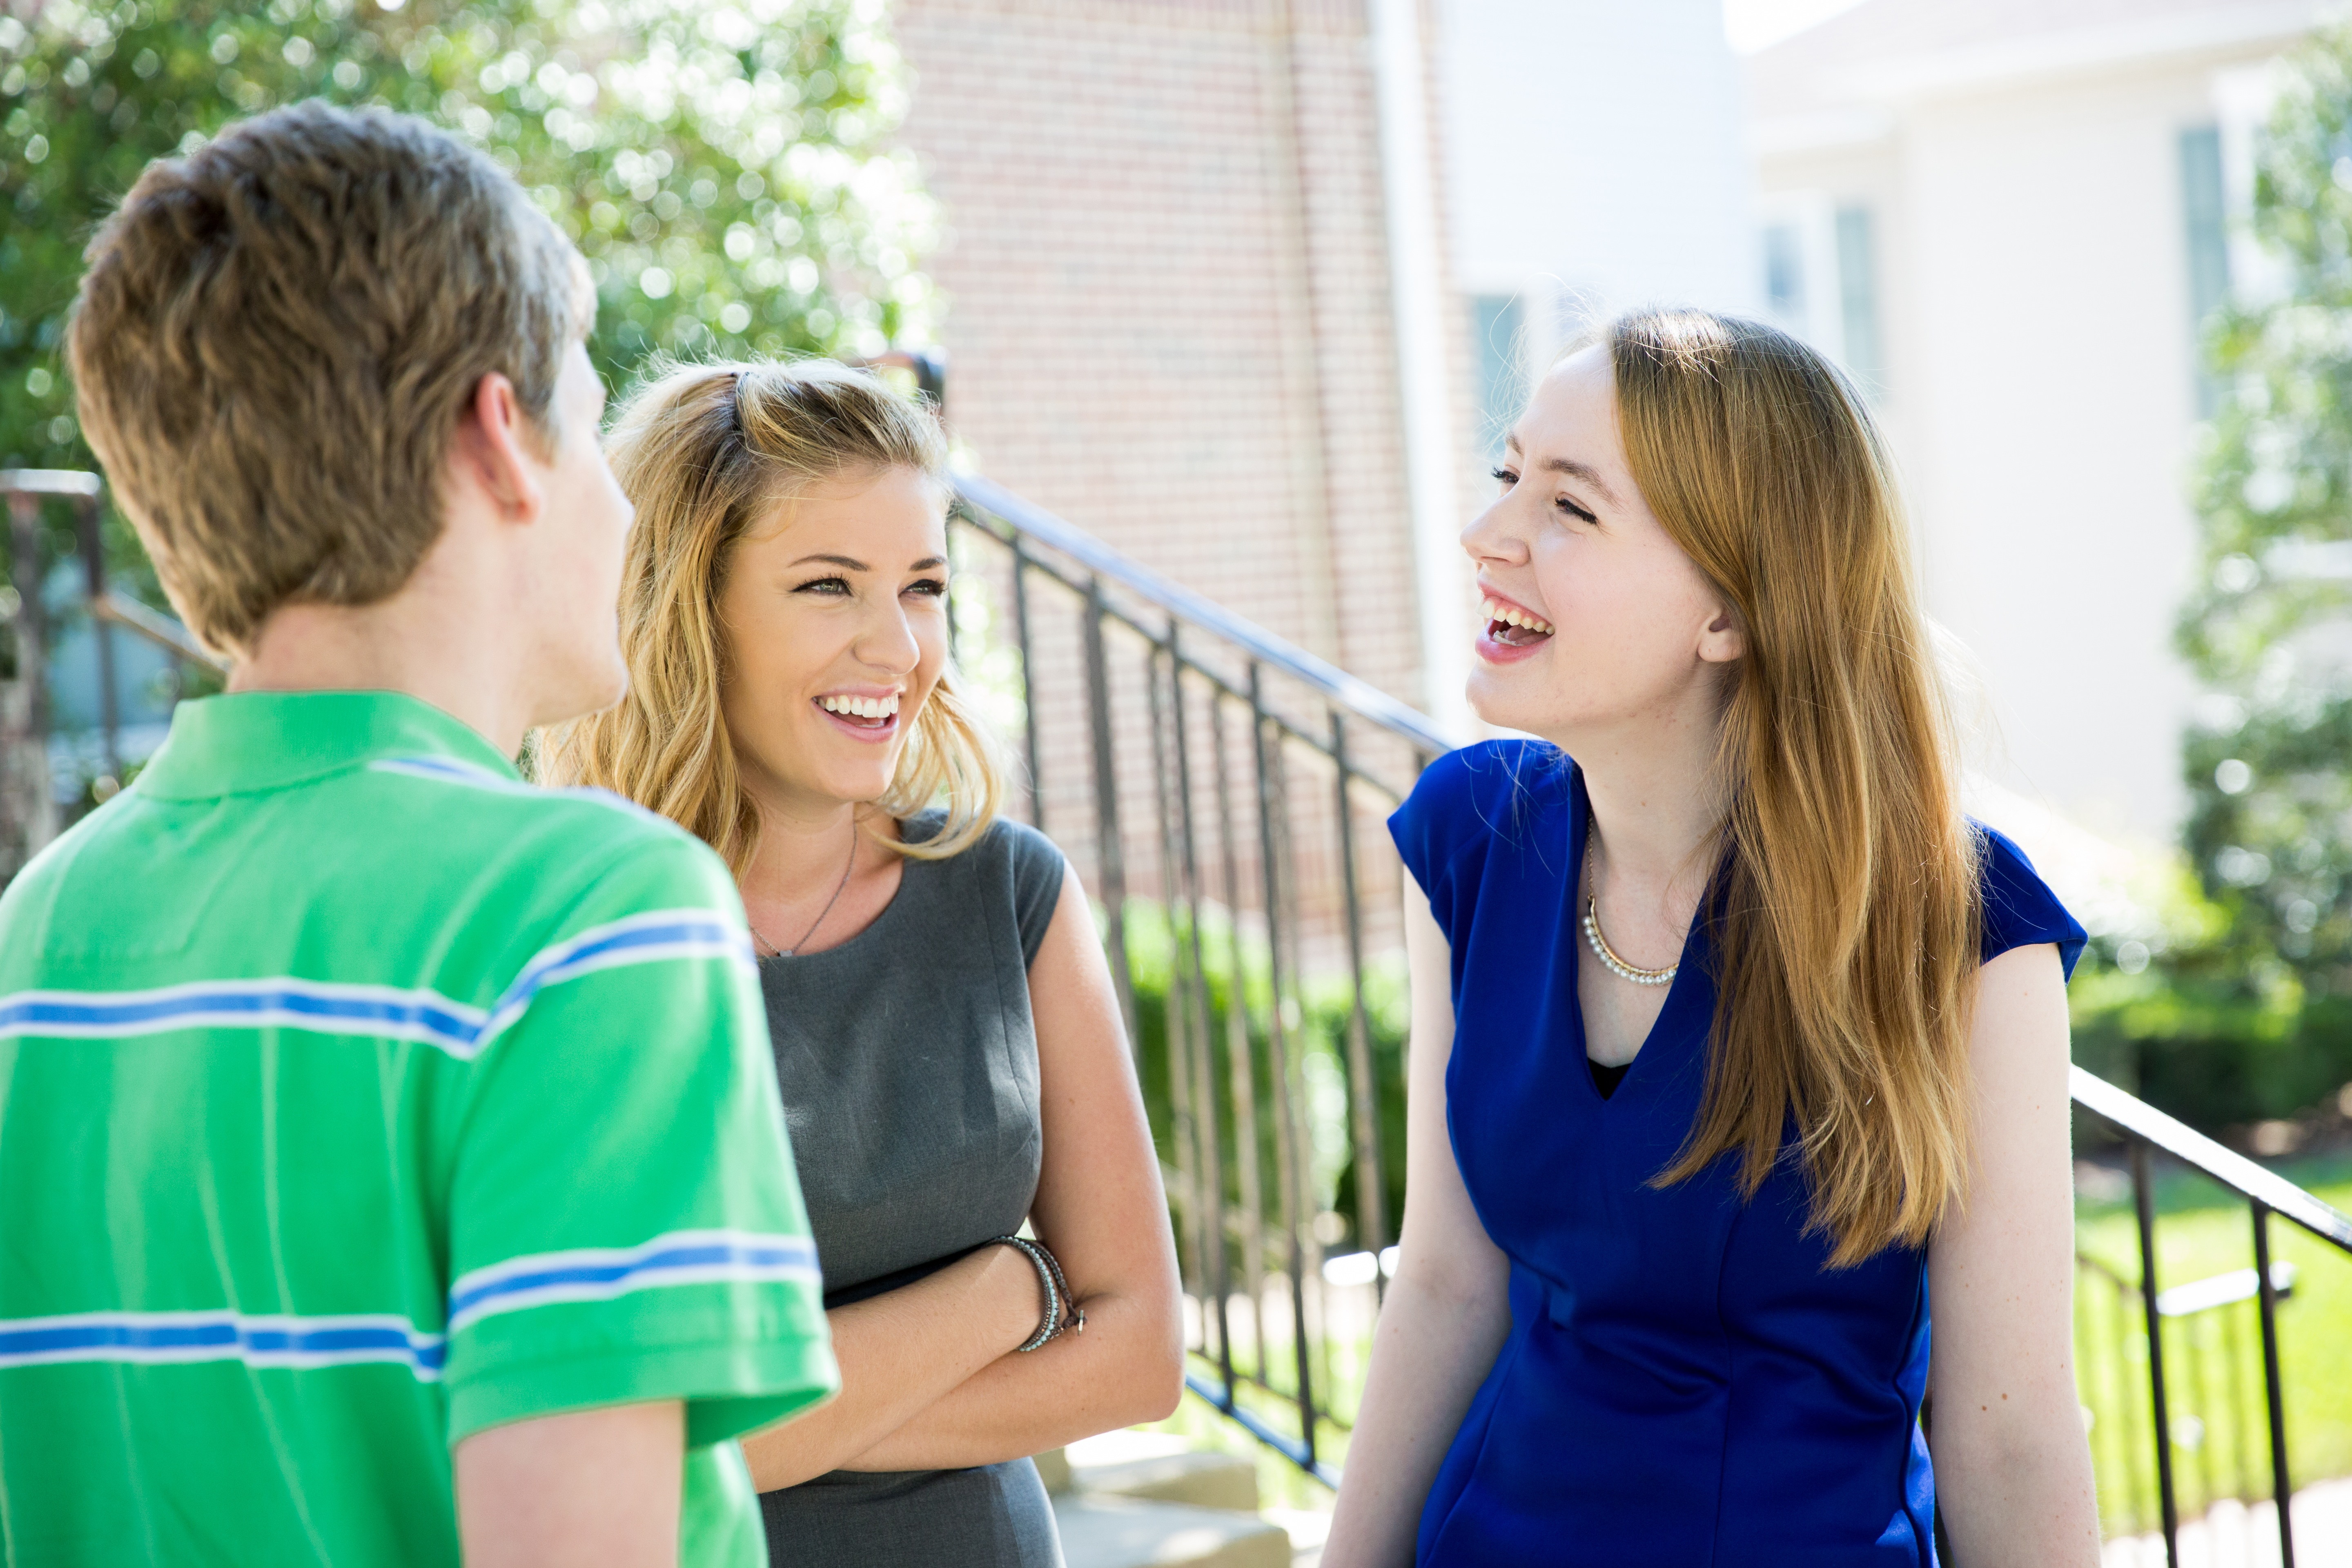 Patrick Henry College students